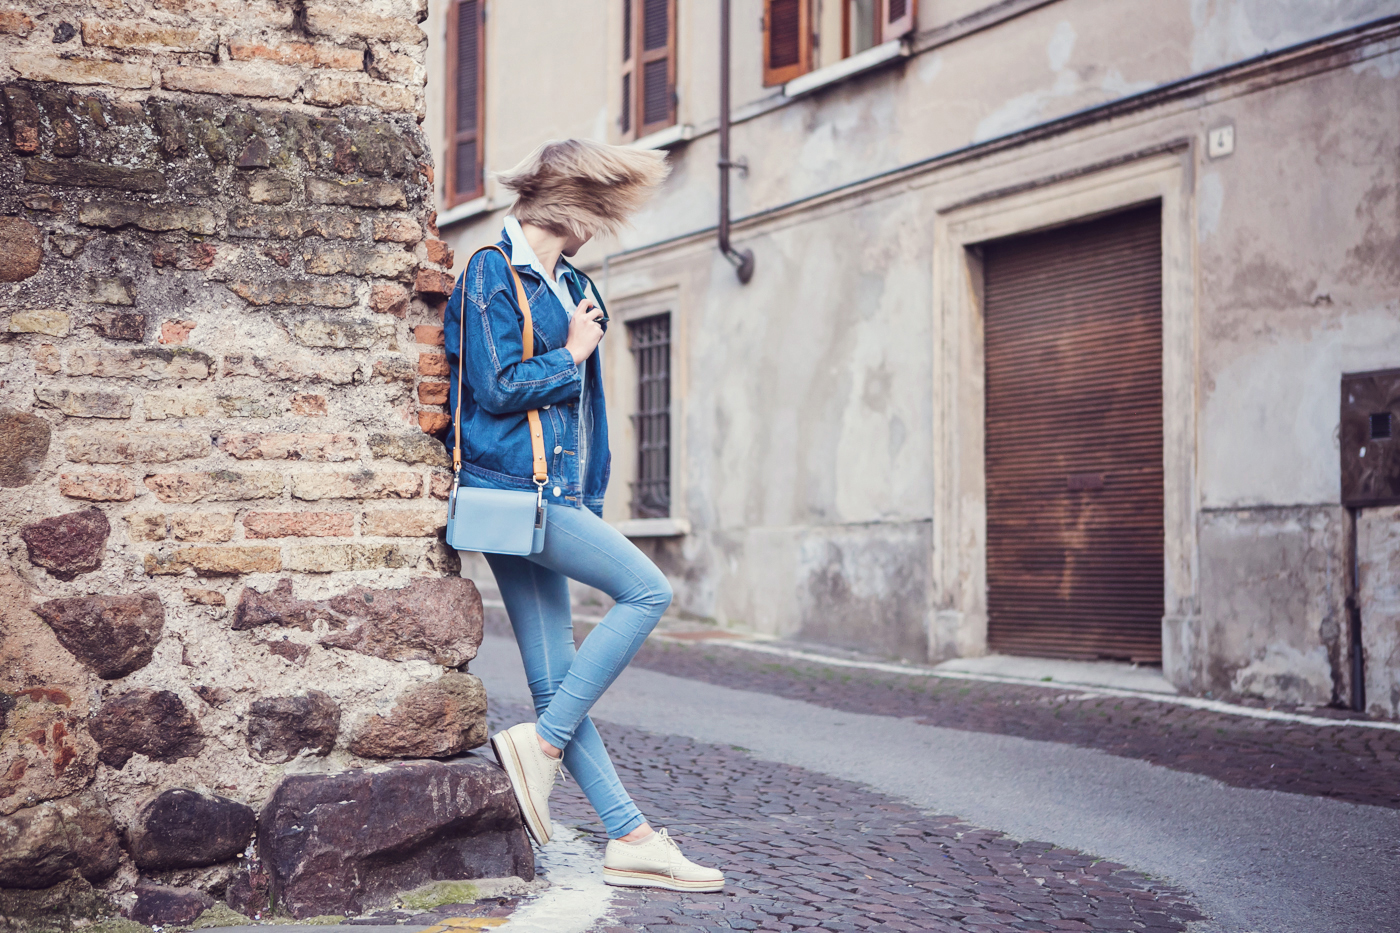 darya kamalova from thecablook com on the vintage flea market in lonato in italy wearing and other stories bag, dr.denim jeans and pollini flatform brogues-33